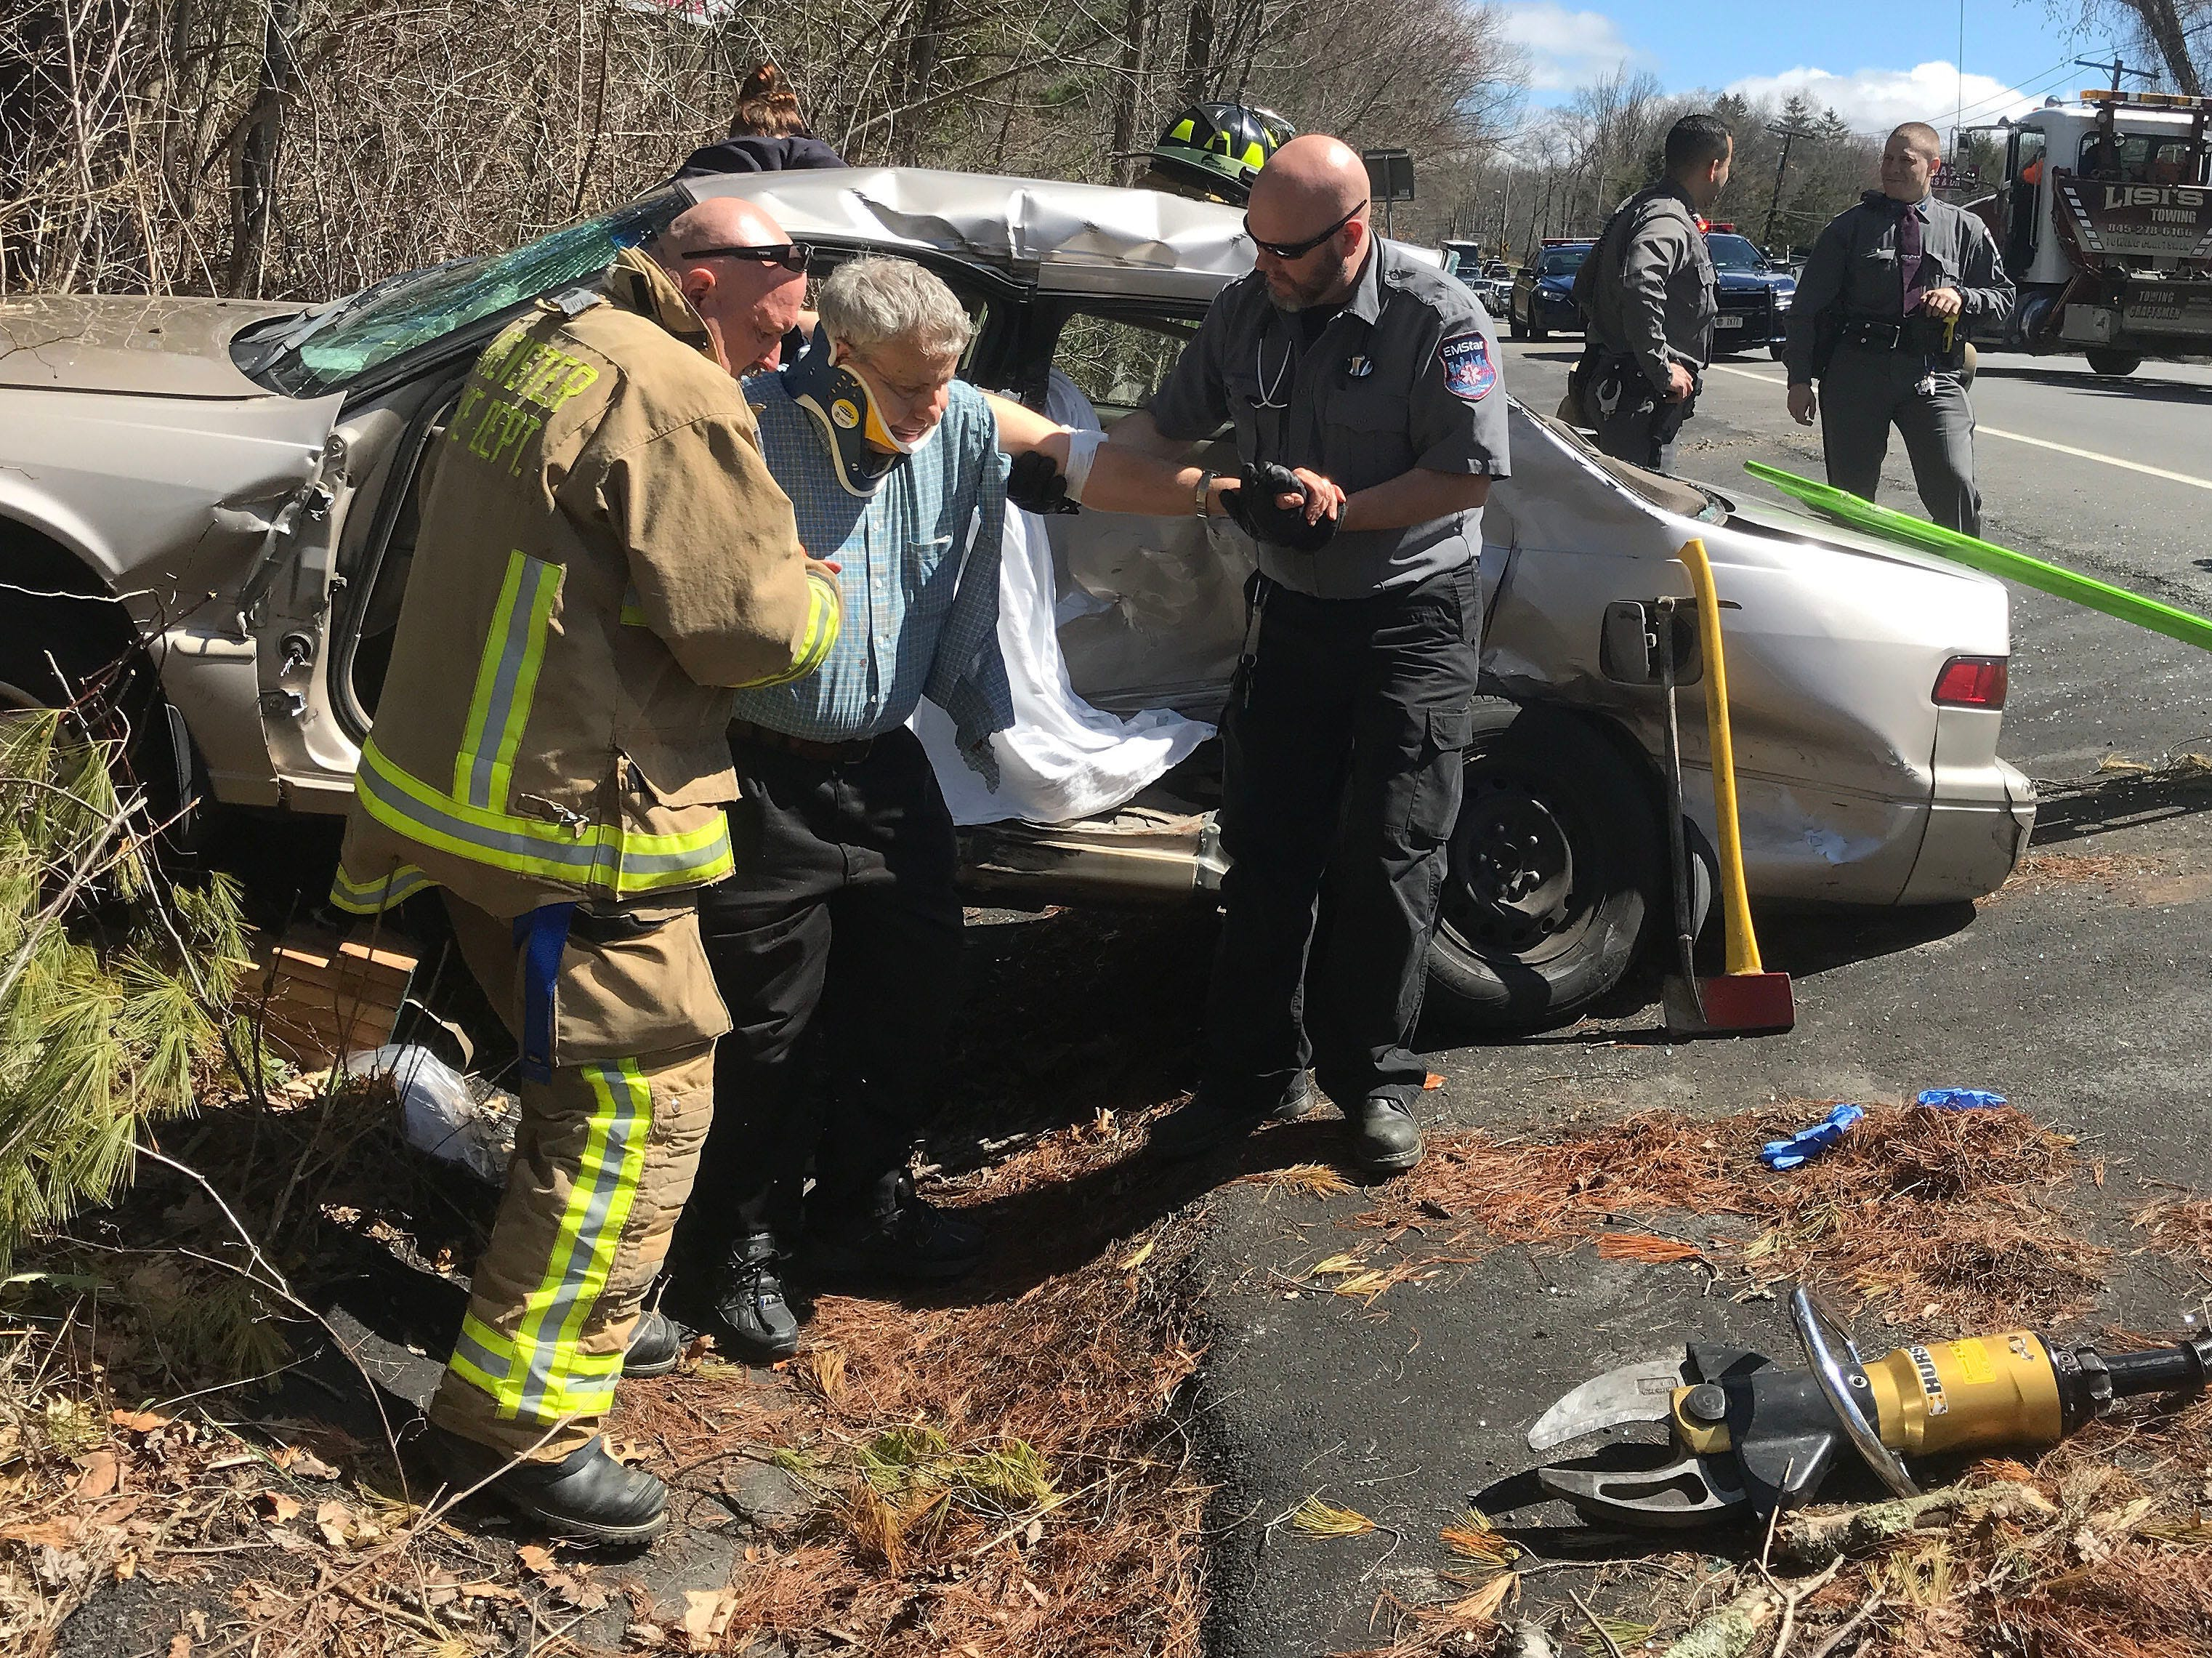 First responders aid an injured driver from his vehicle after it crashed into a van on Route 22 in Brewster April 26, 2018. Rescuers had to cut the door off the vehicle to remove the driver, who was transported to Putnam Hospital center in Carmel.